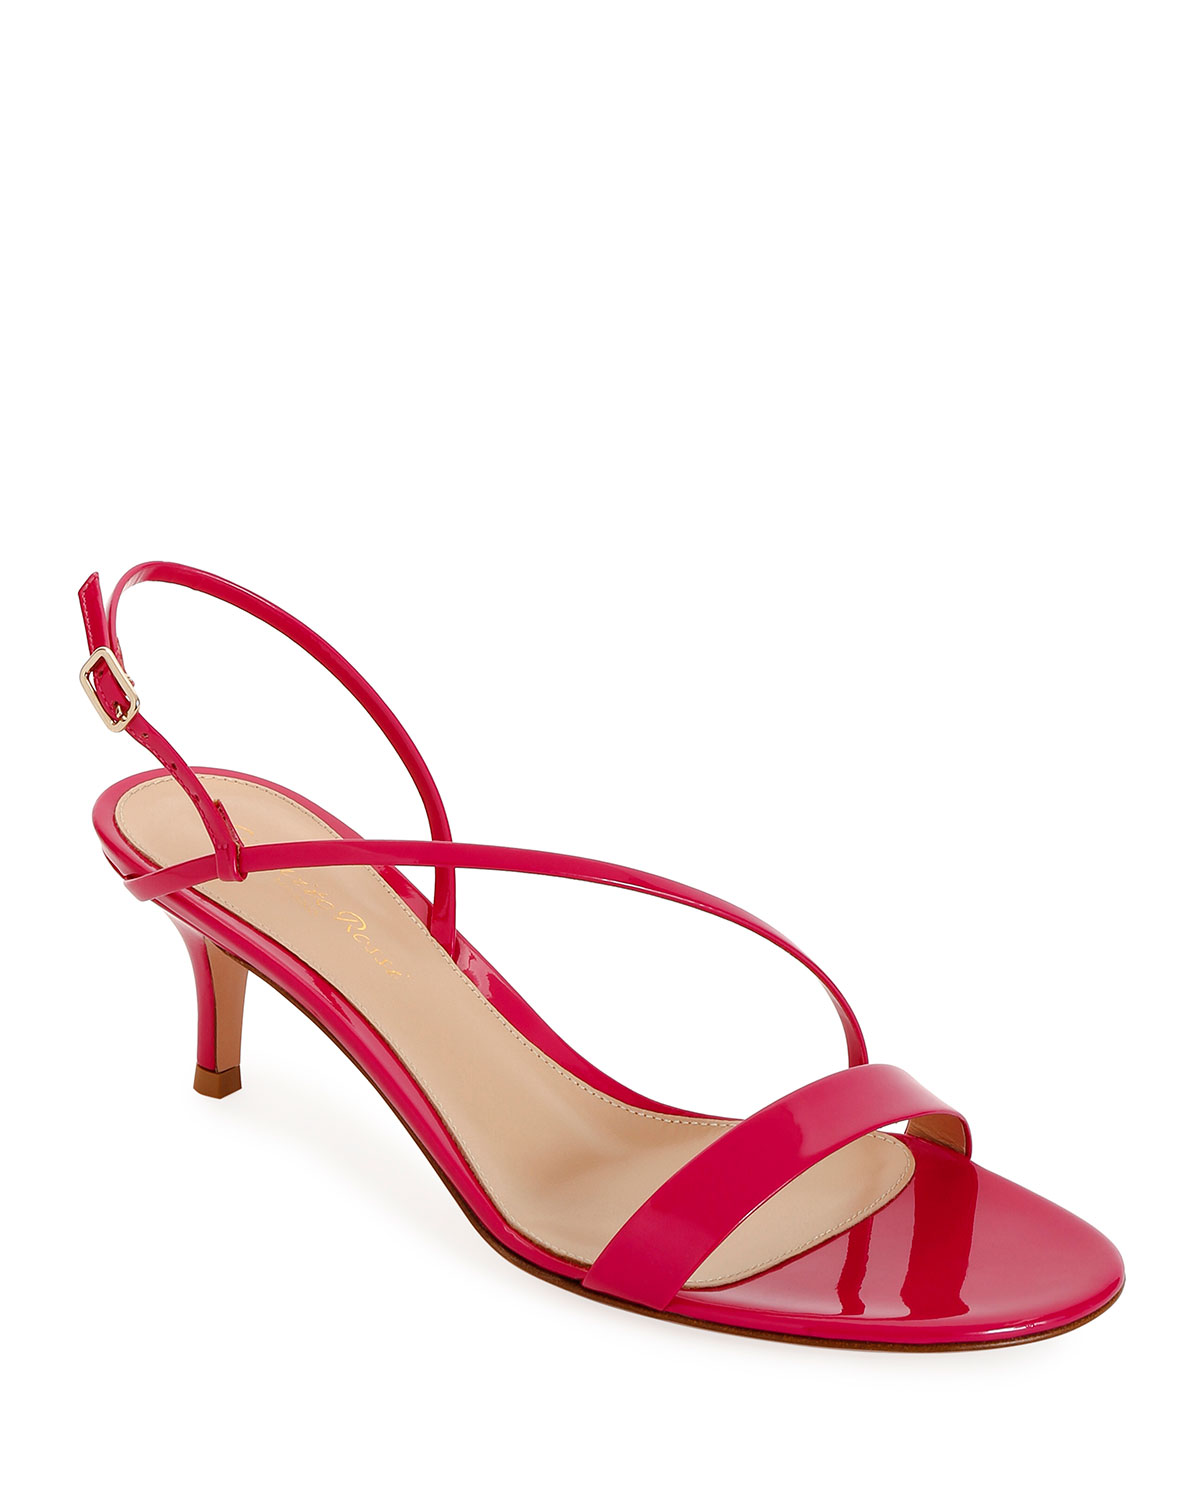 Strappy Low-Heel Patent Sandals